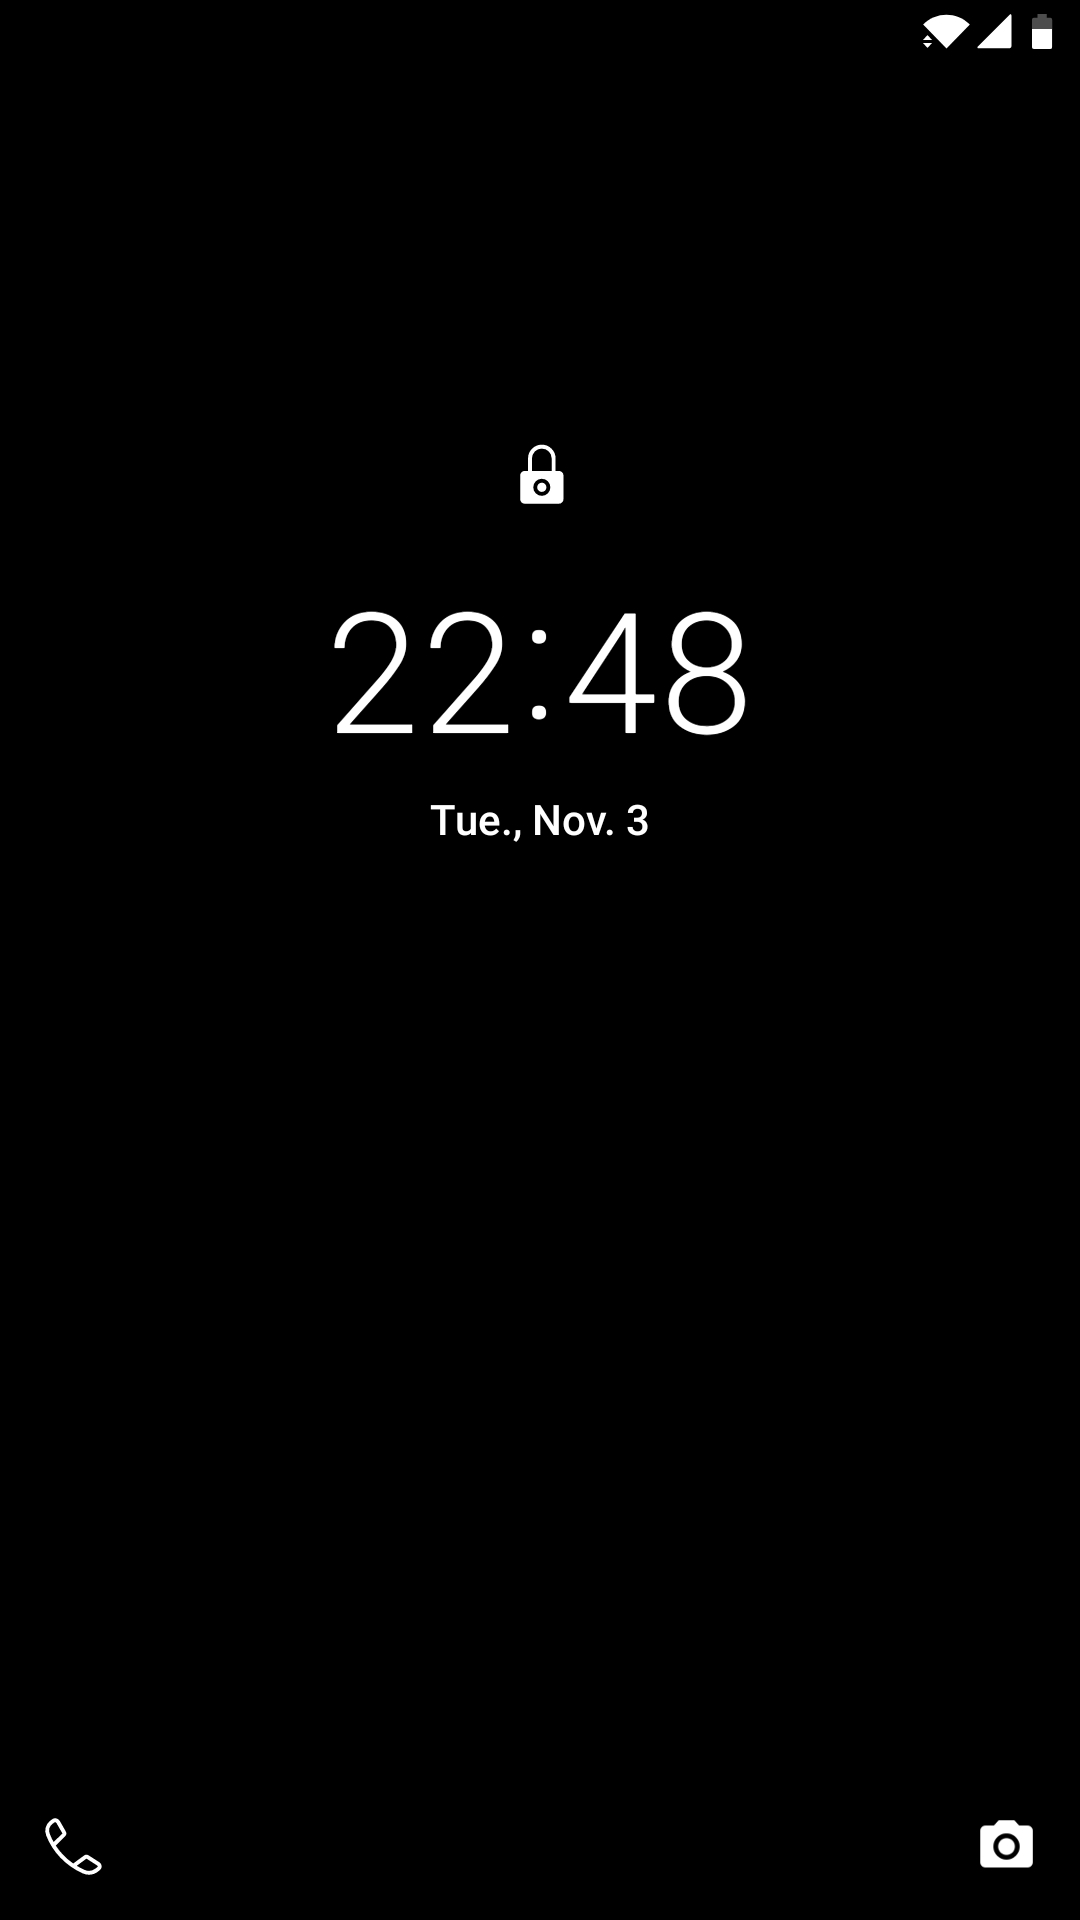 Lock screen on my Android smartphone, showing the current date and time